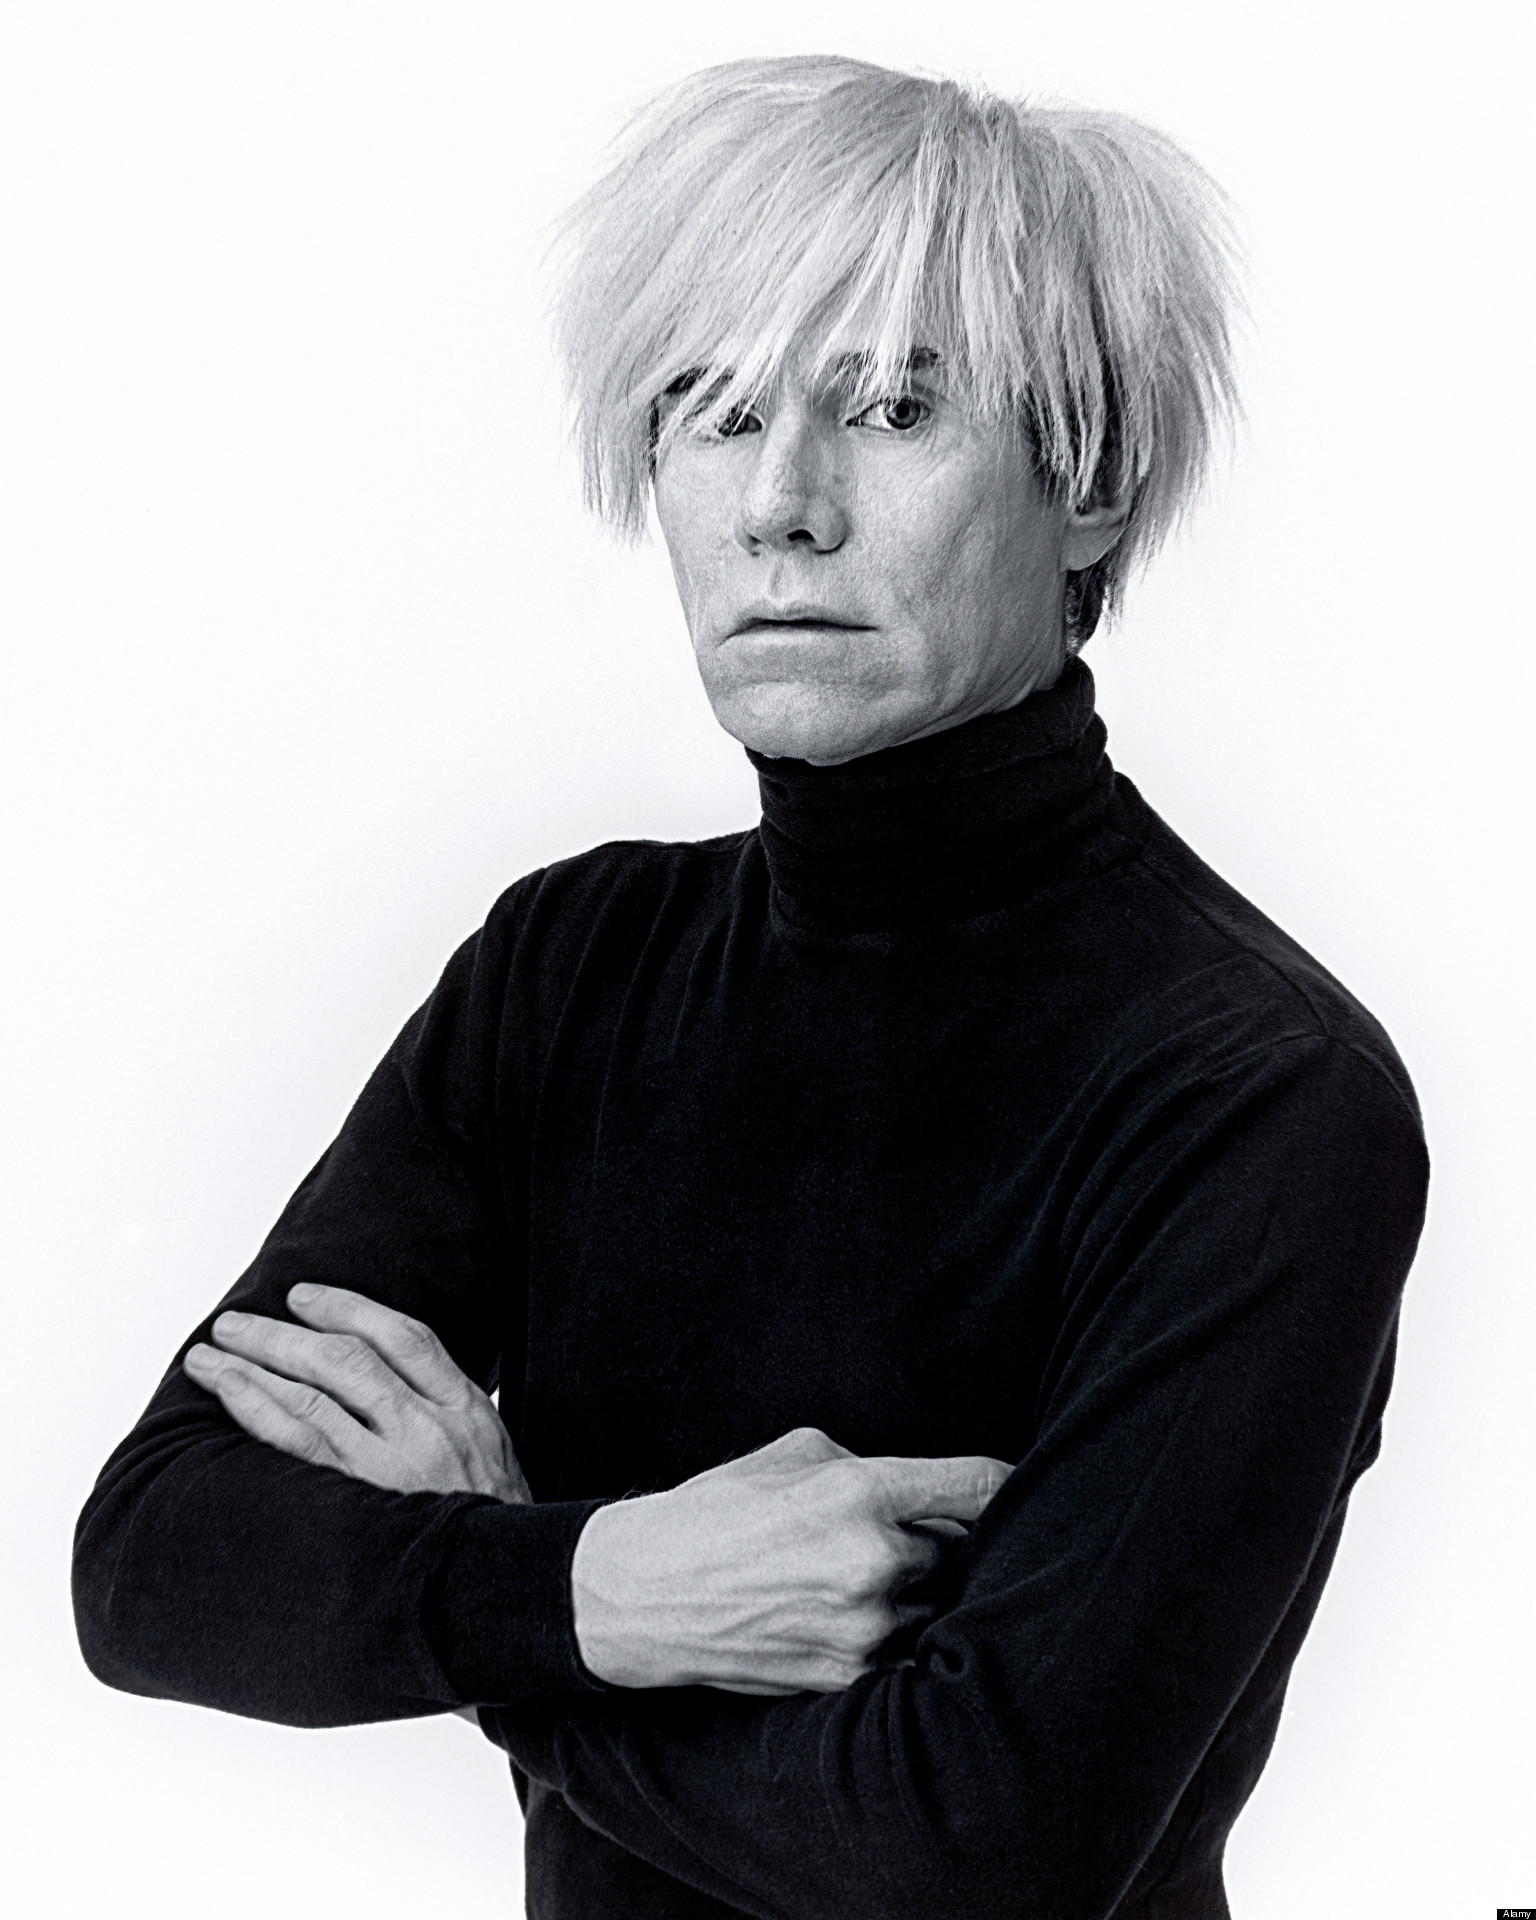 Andy Warhol is an iconic American artist who transformed our understanding of mass production and iconography